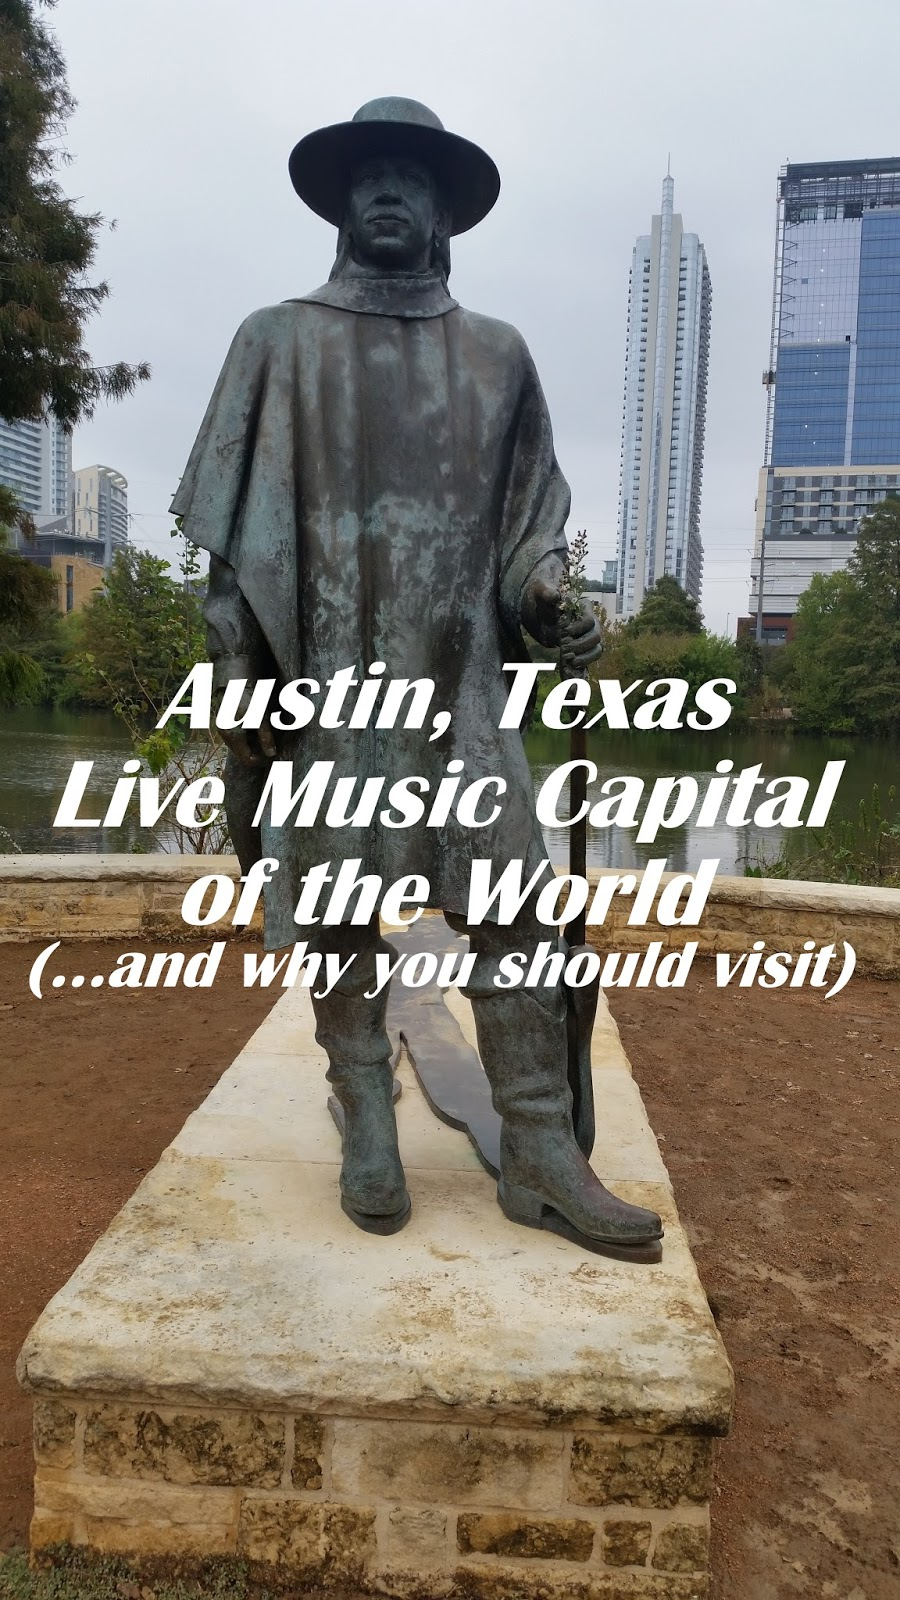 Austin Texas Live Music Capital of the World Adventures of a London Kiwi